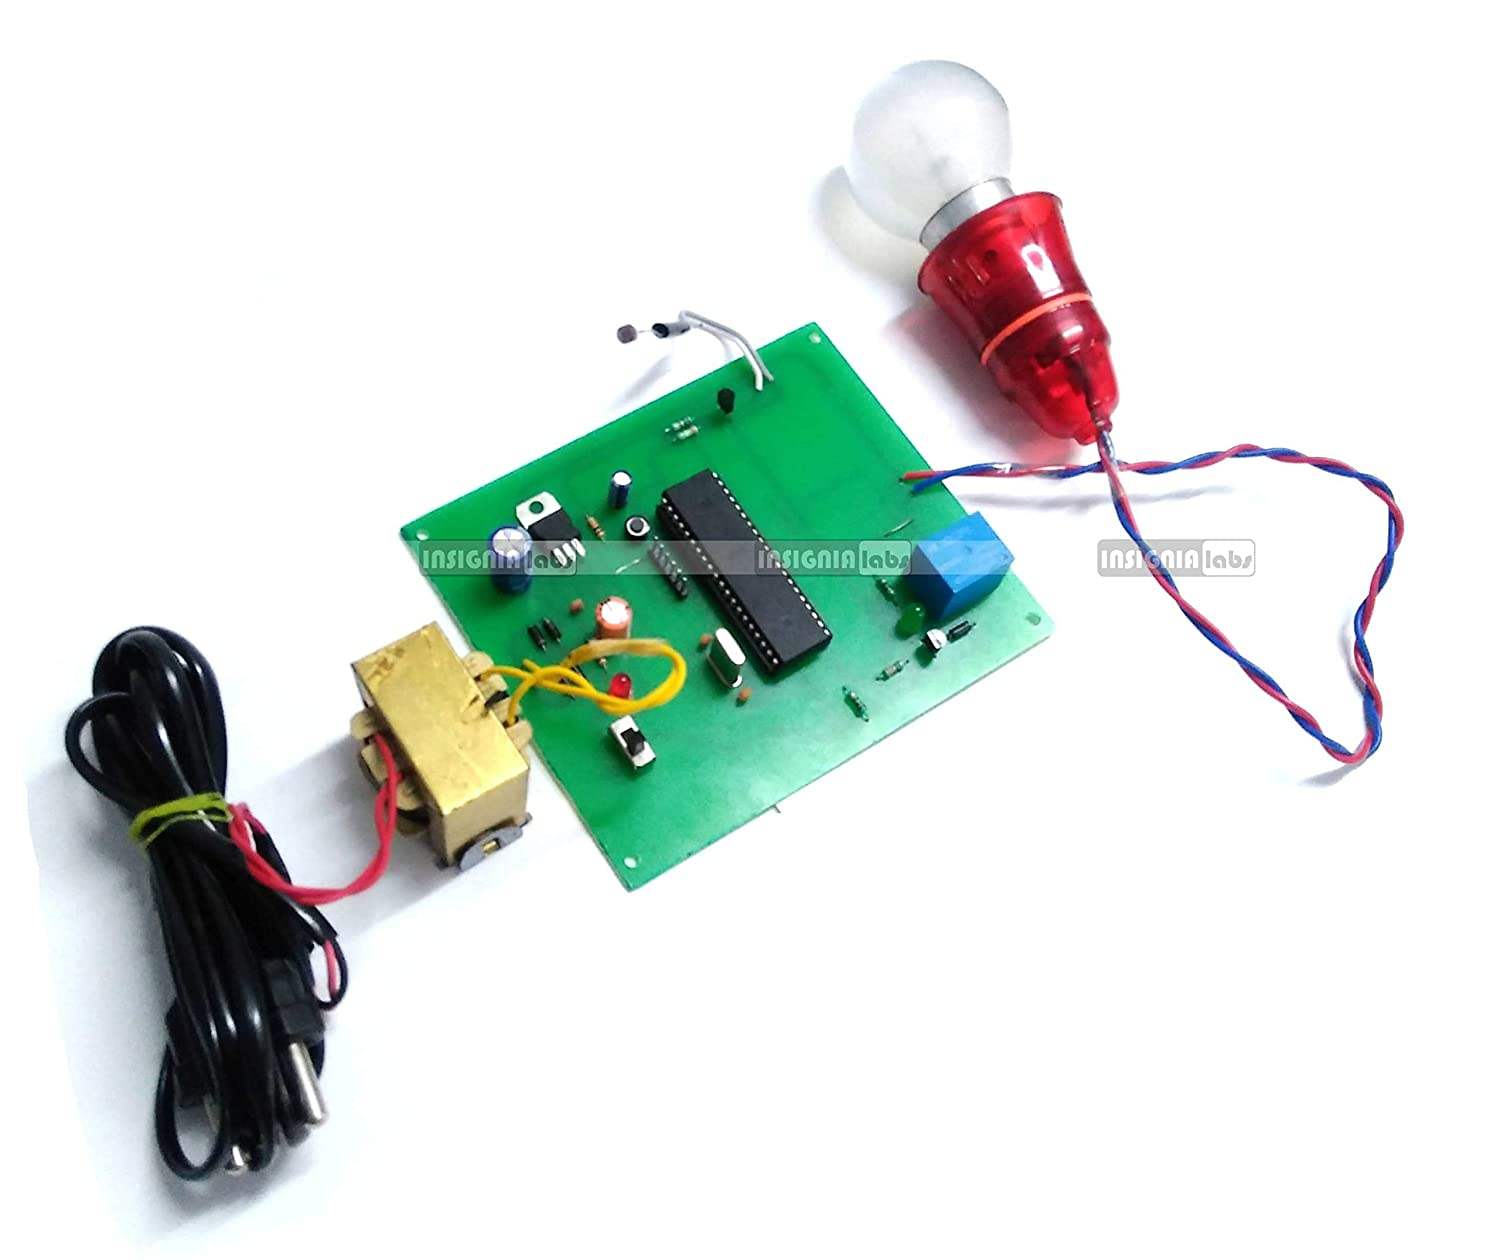 Insignia Labs 8051 Microcontroller Based Ldr Sensor Day Night Ac Projects 038 Circuits Light Bulb Control Project Kit Embedded Industrial Scientific